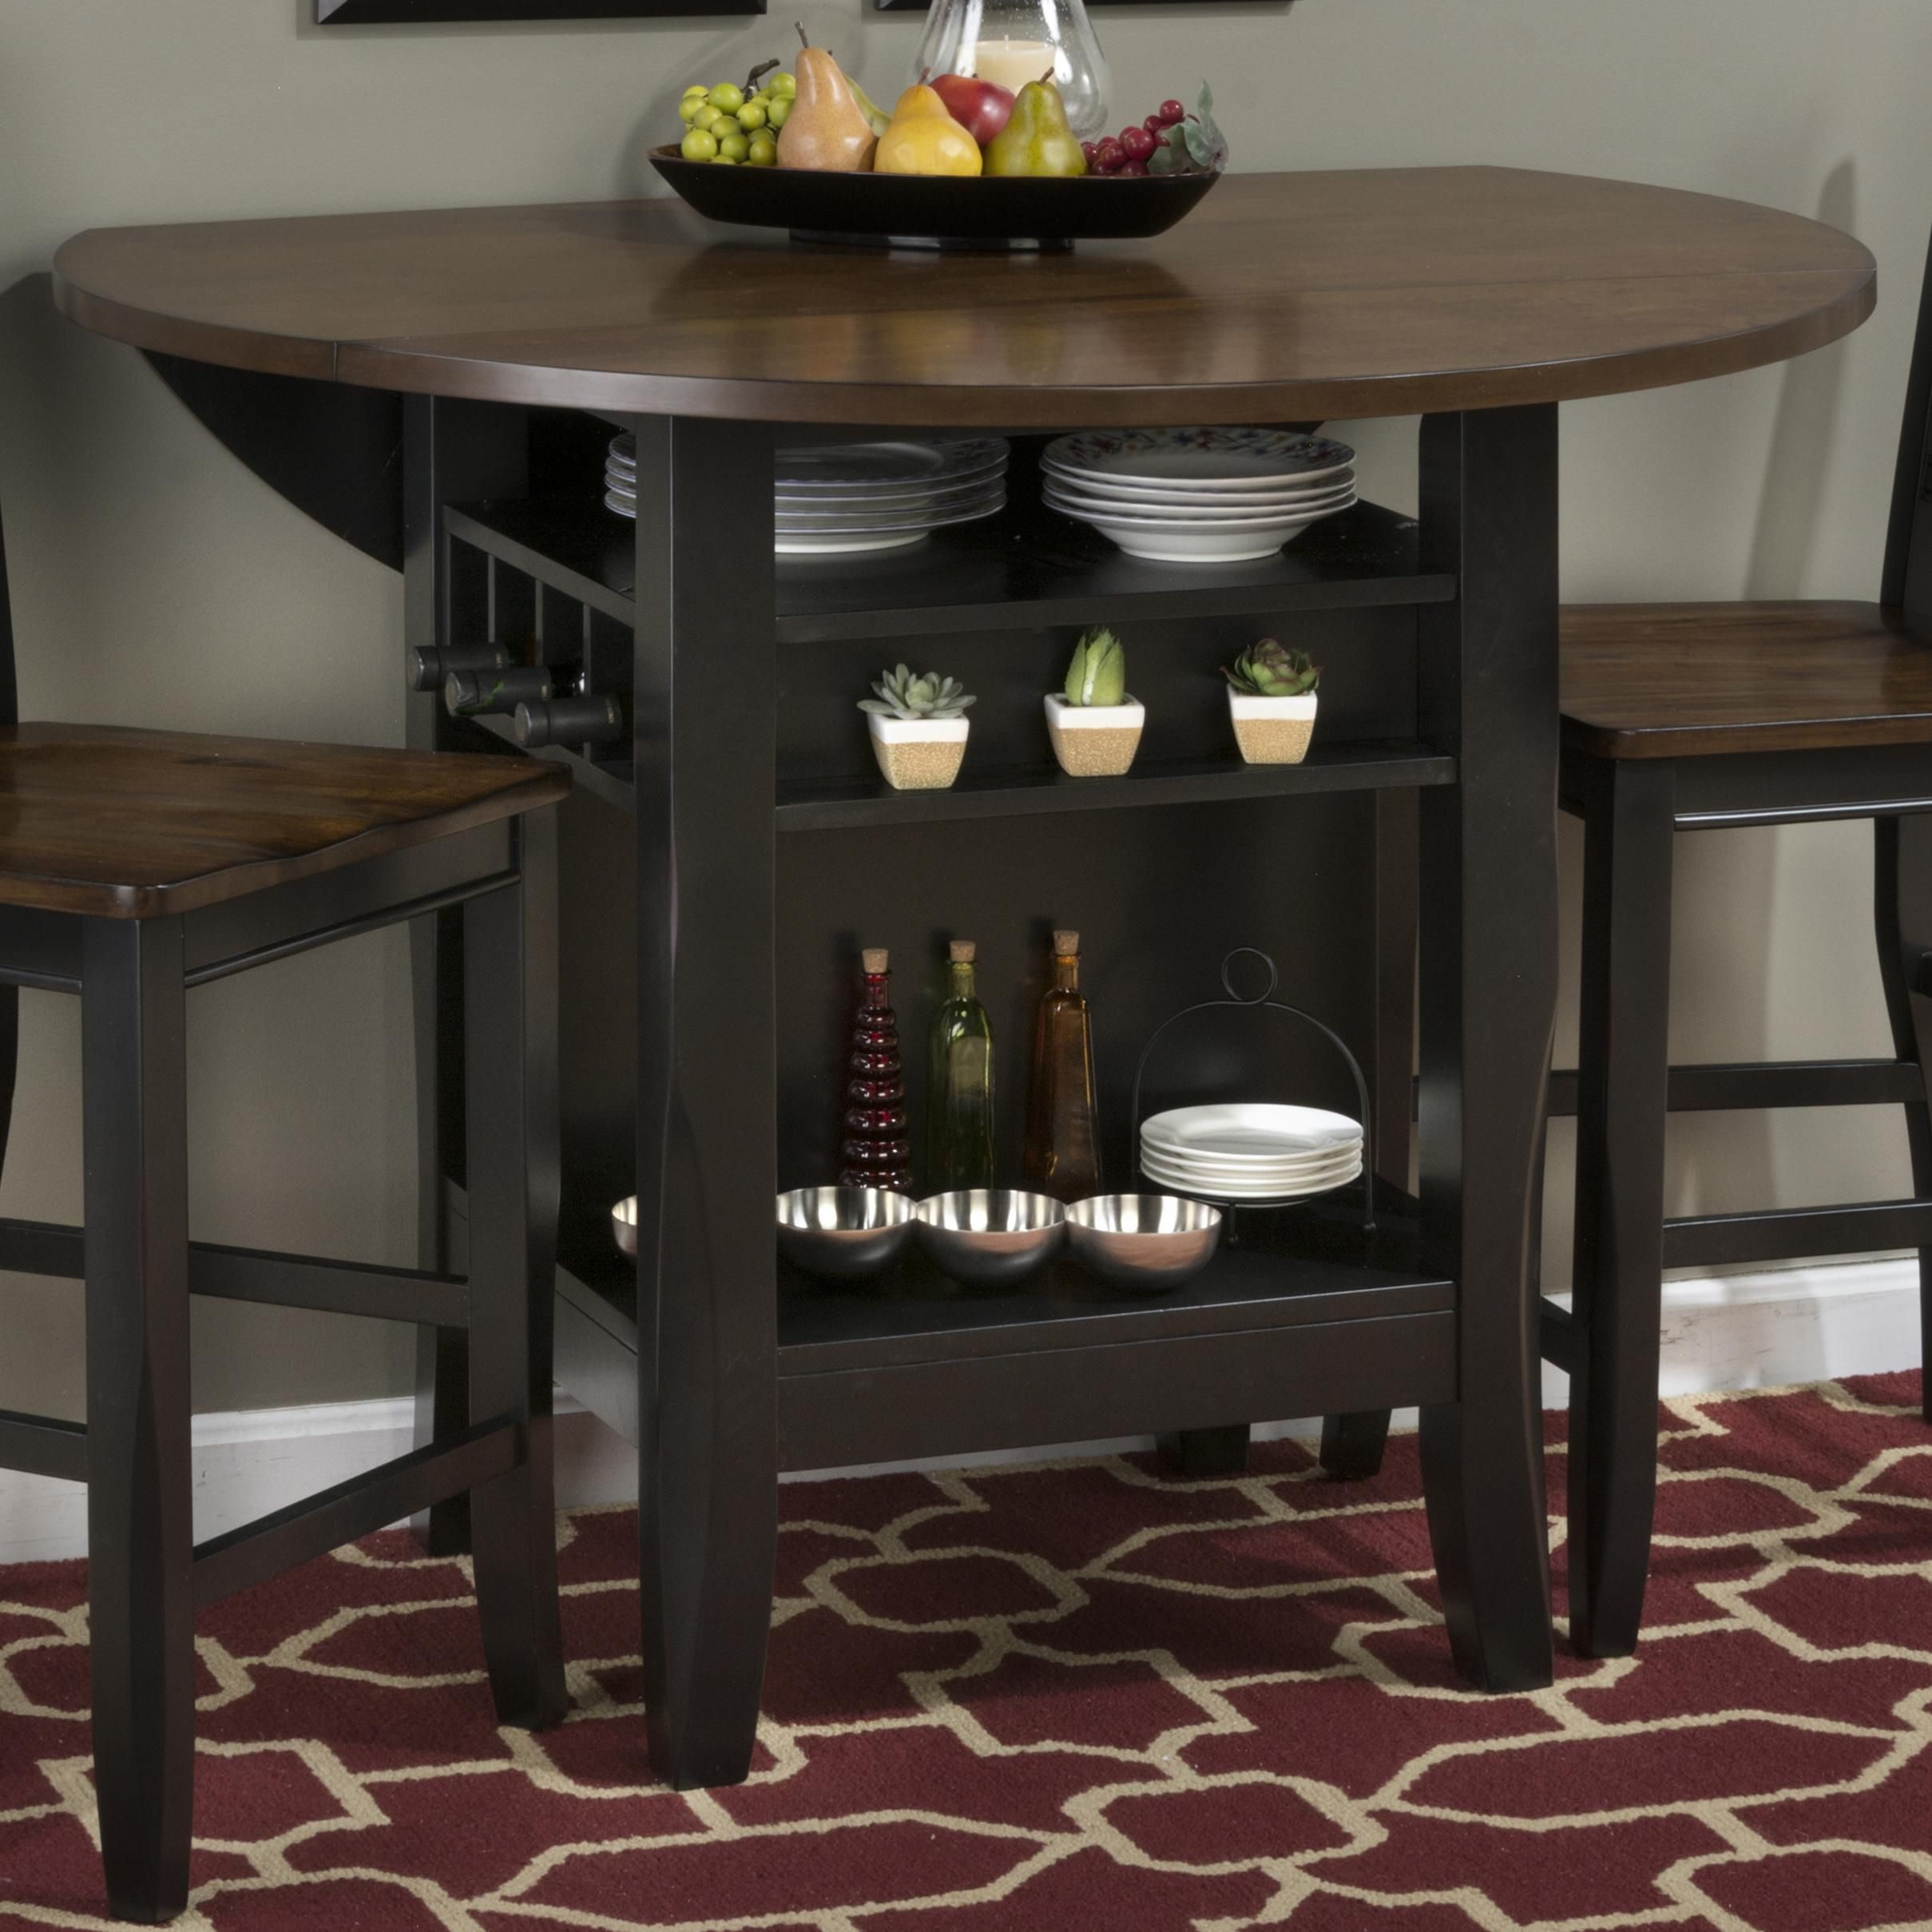 "Dining Room Table With Drop Down Sides Cool Braden Birch 48"" Round Counter Height Table With Dropdown Leaf Design Ideas"